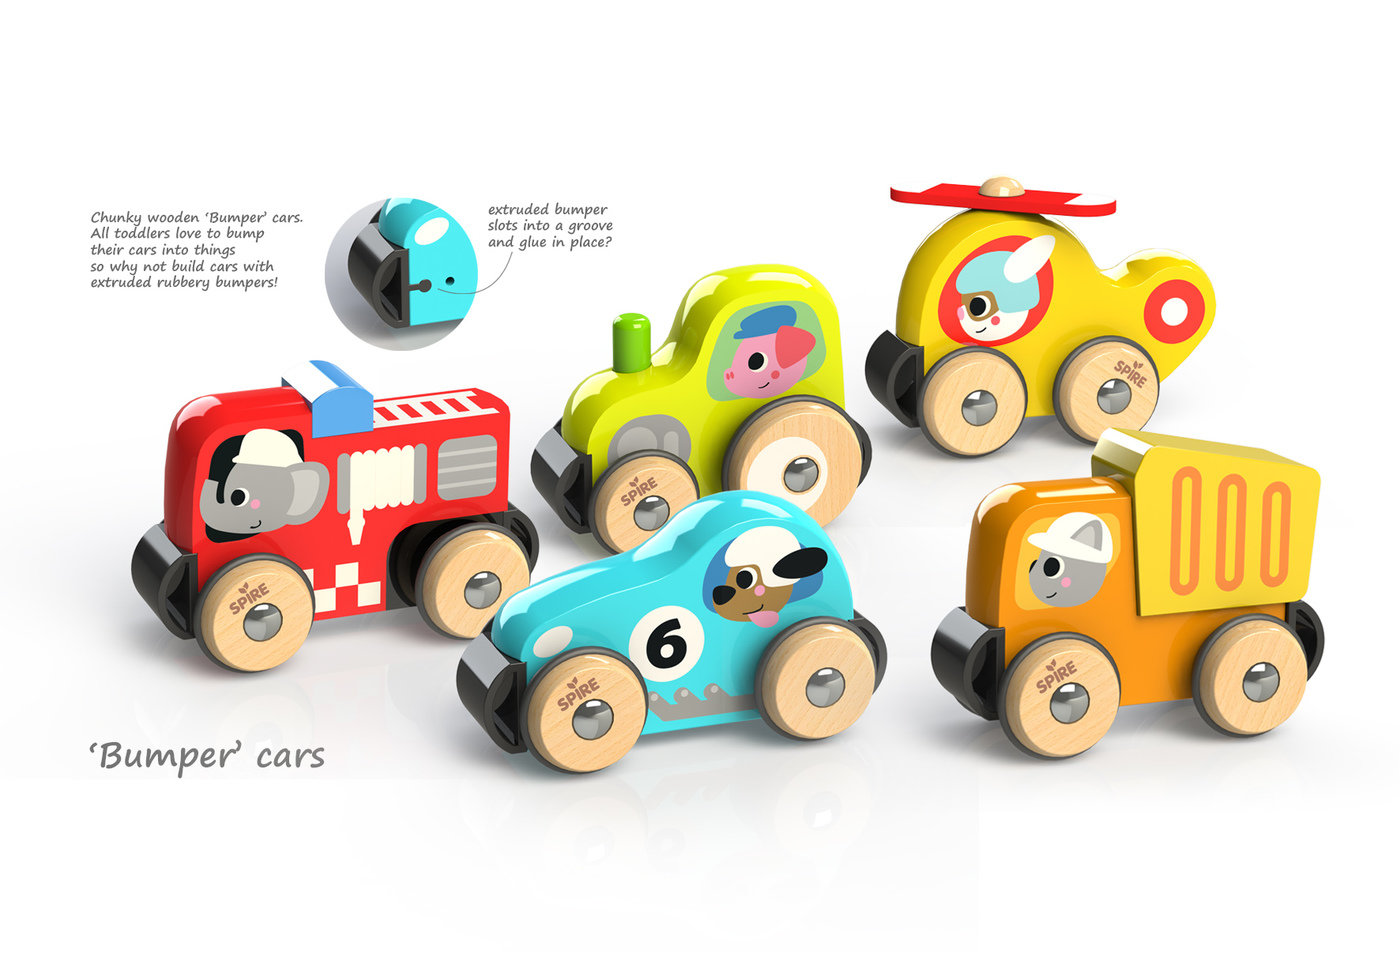 Bumpsters Range Of Chunky Wooden Toy Vehicles By Justin Worsley At Coroflot Com